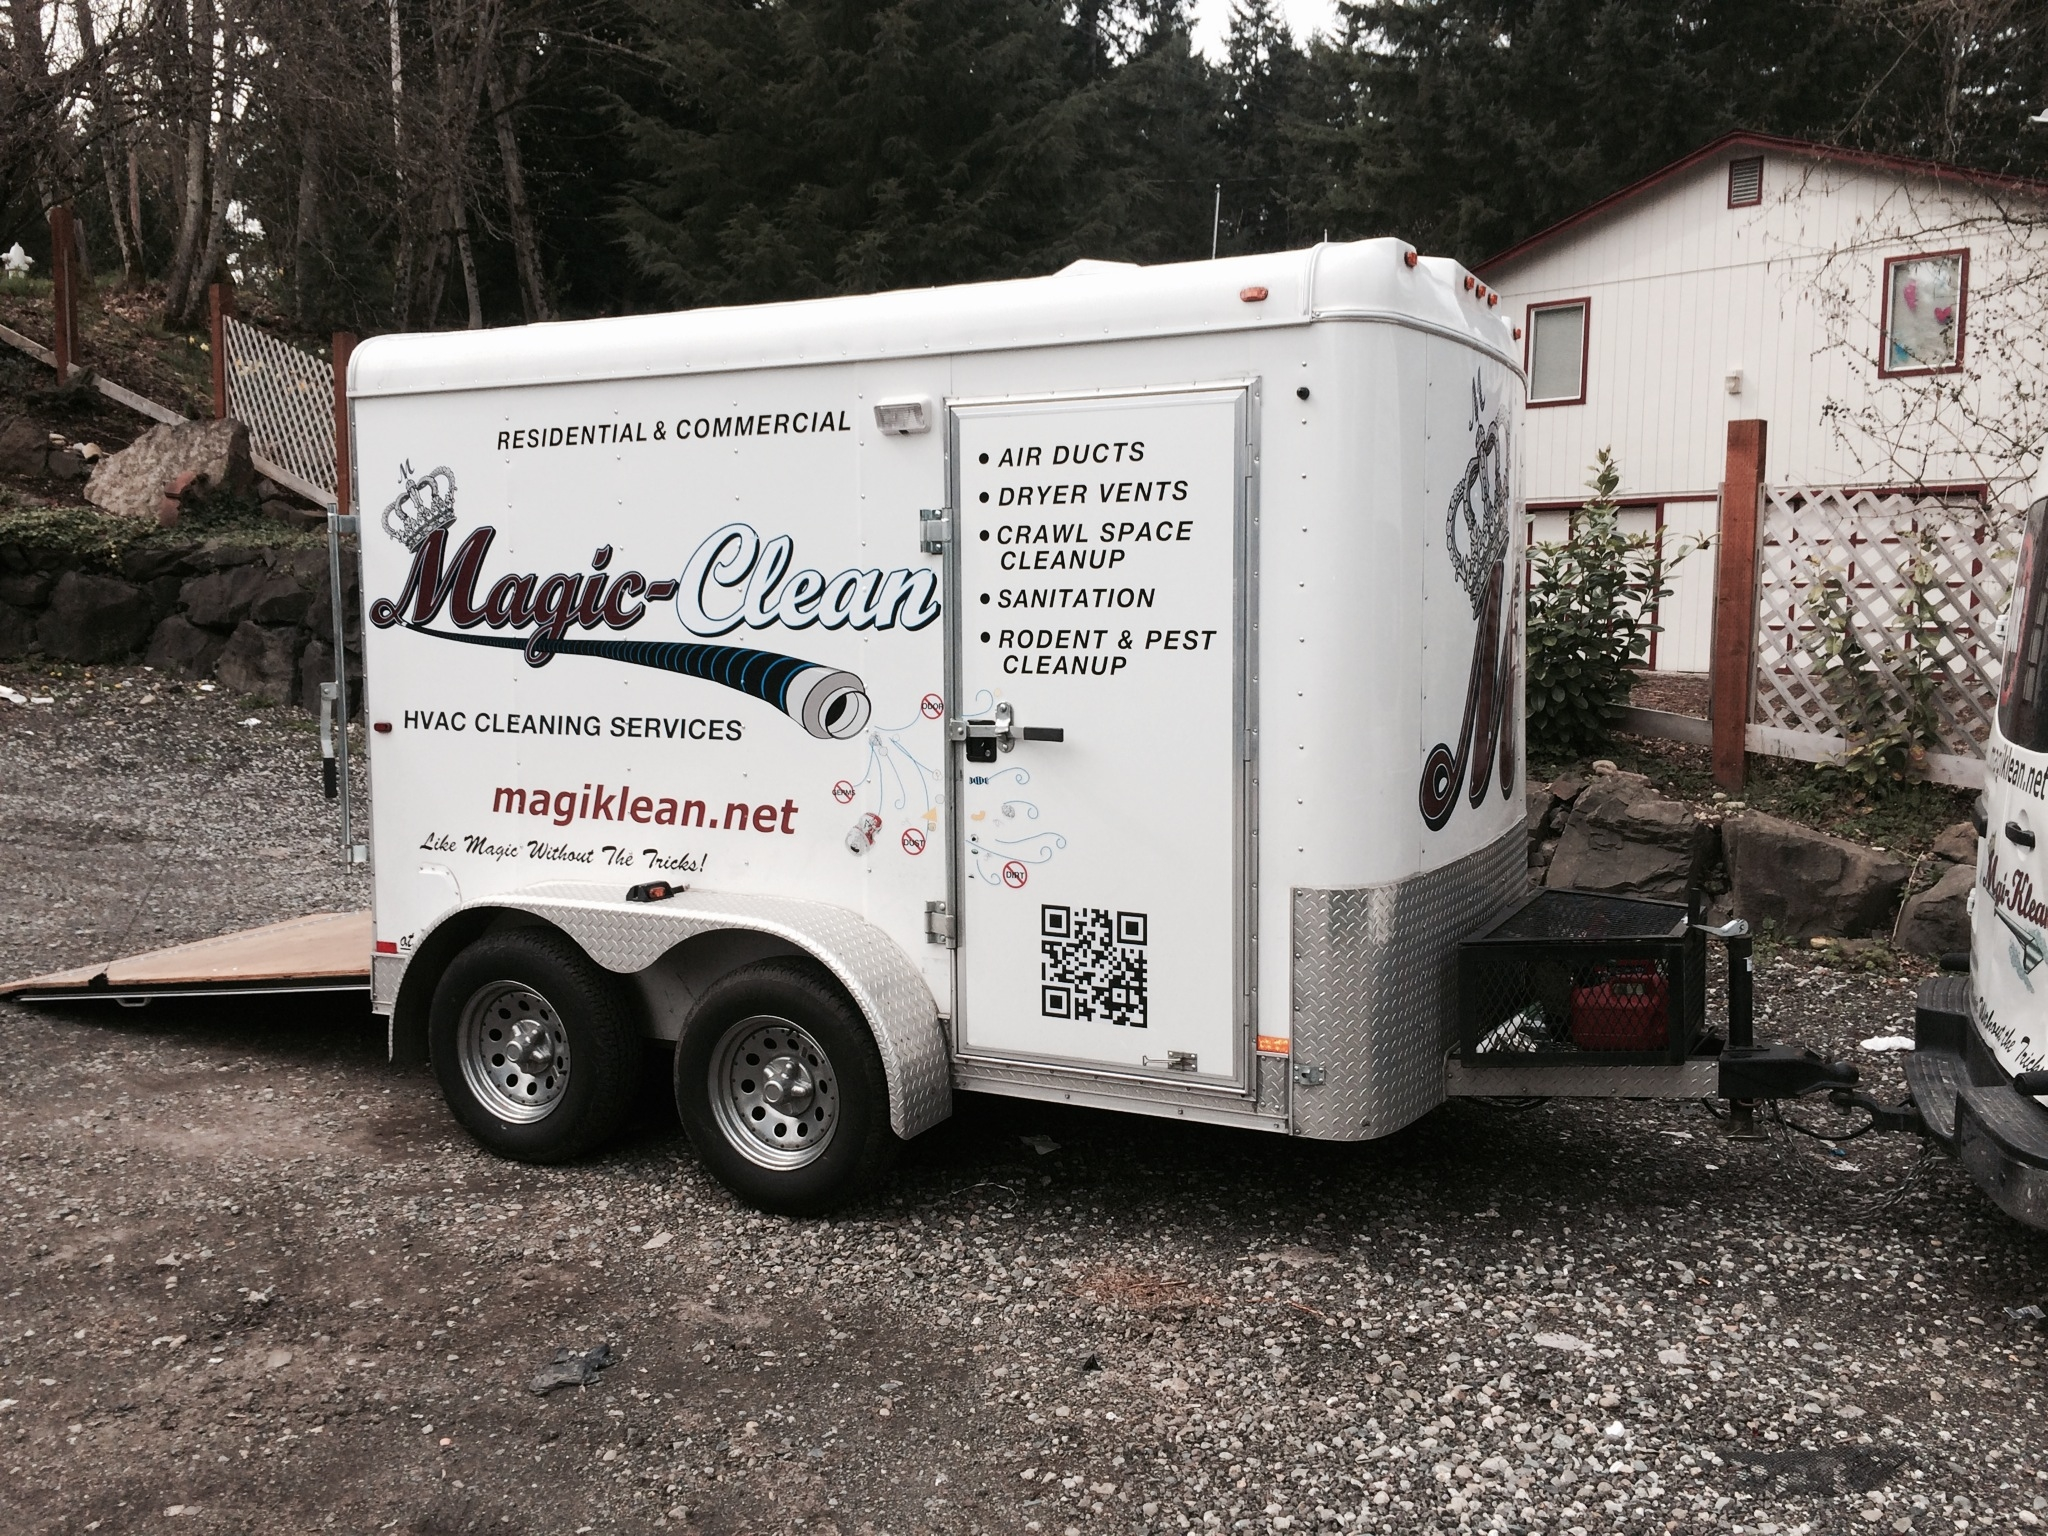 Magic Clean Hvac And Air Duct Cleaning Services In Tacoma